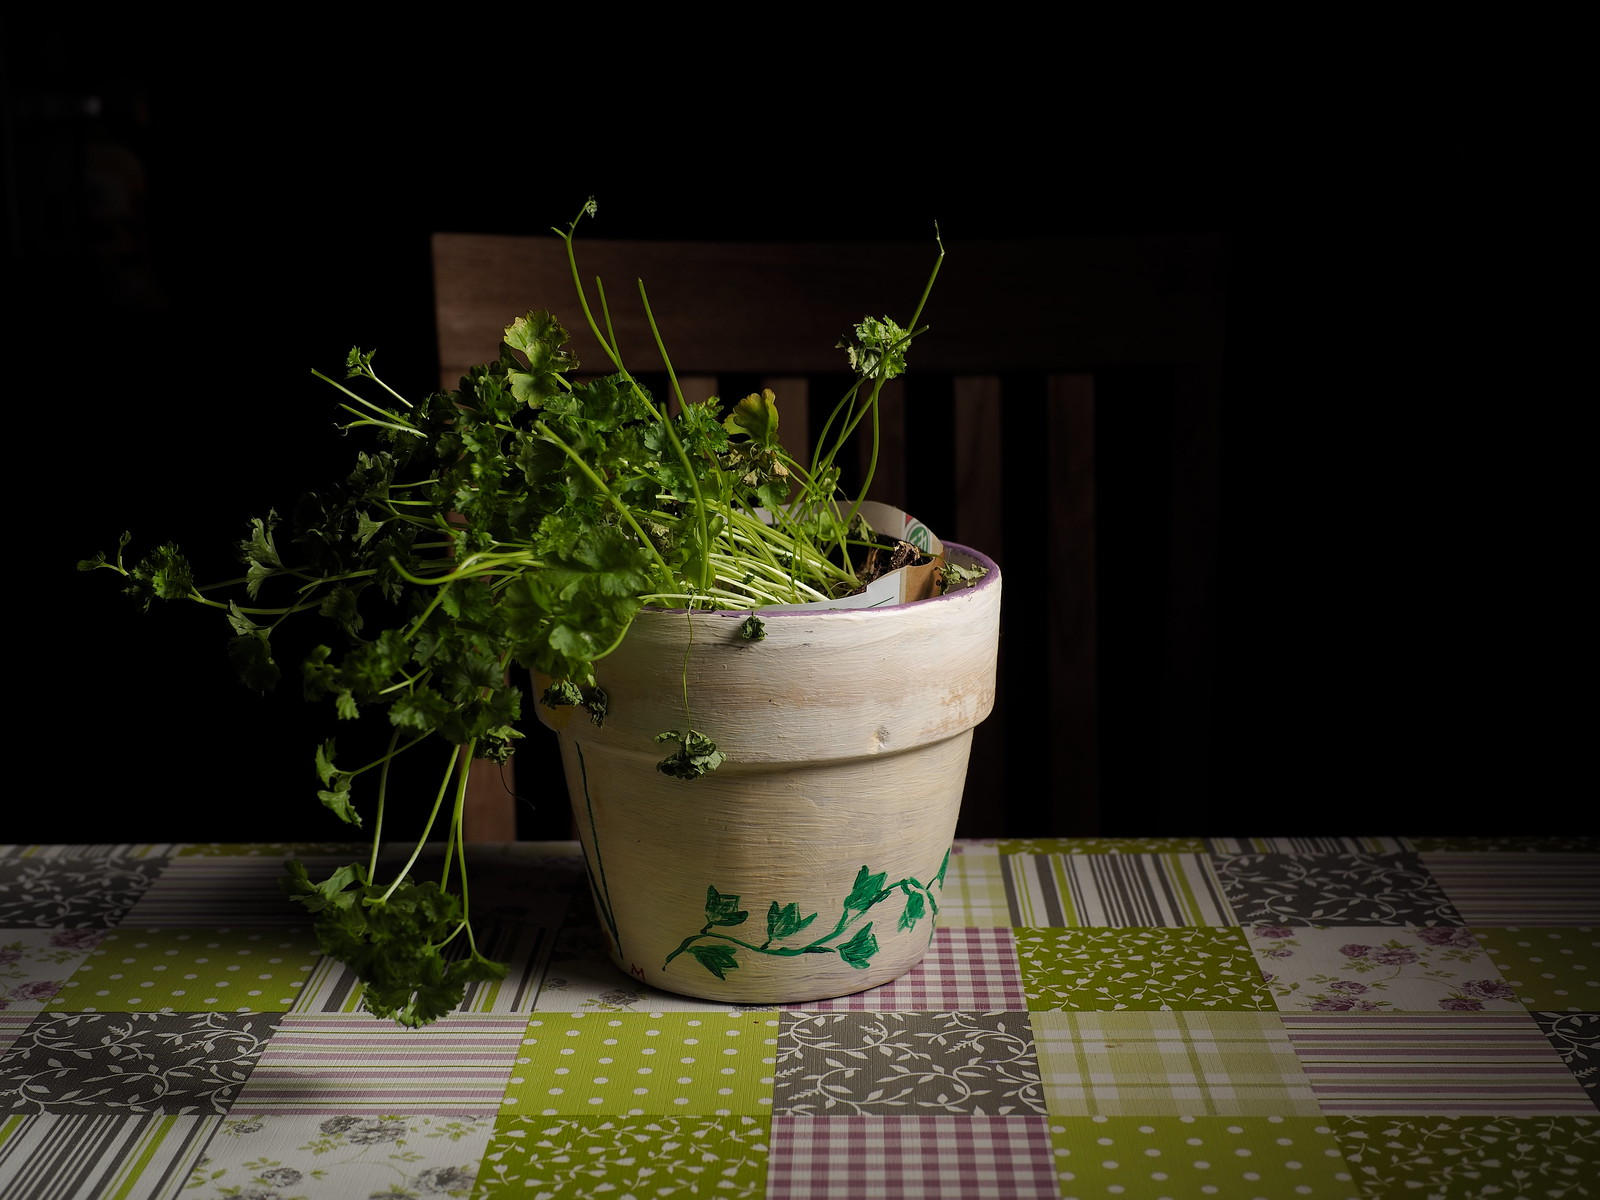 7e2_2169287-parsley